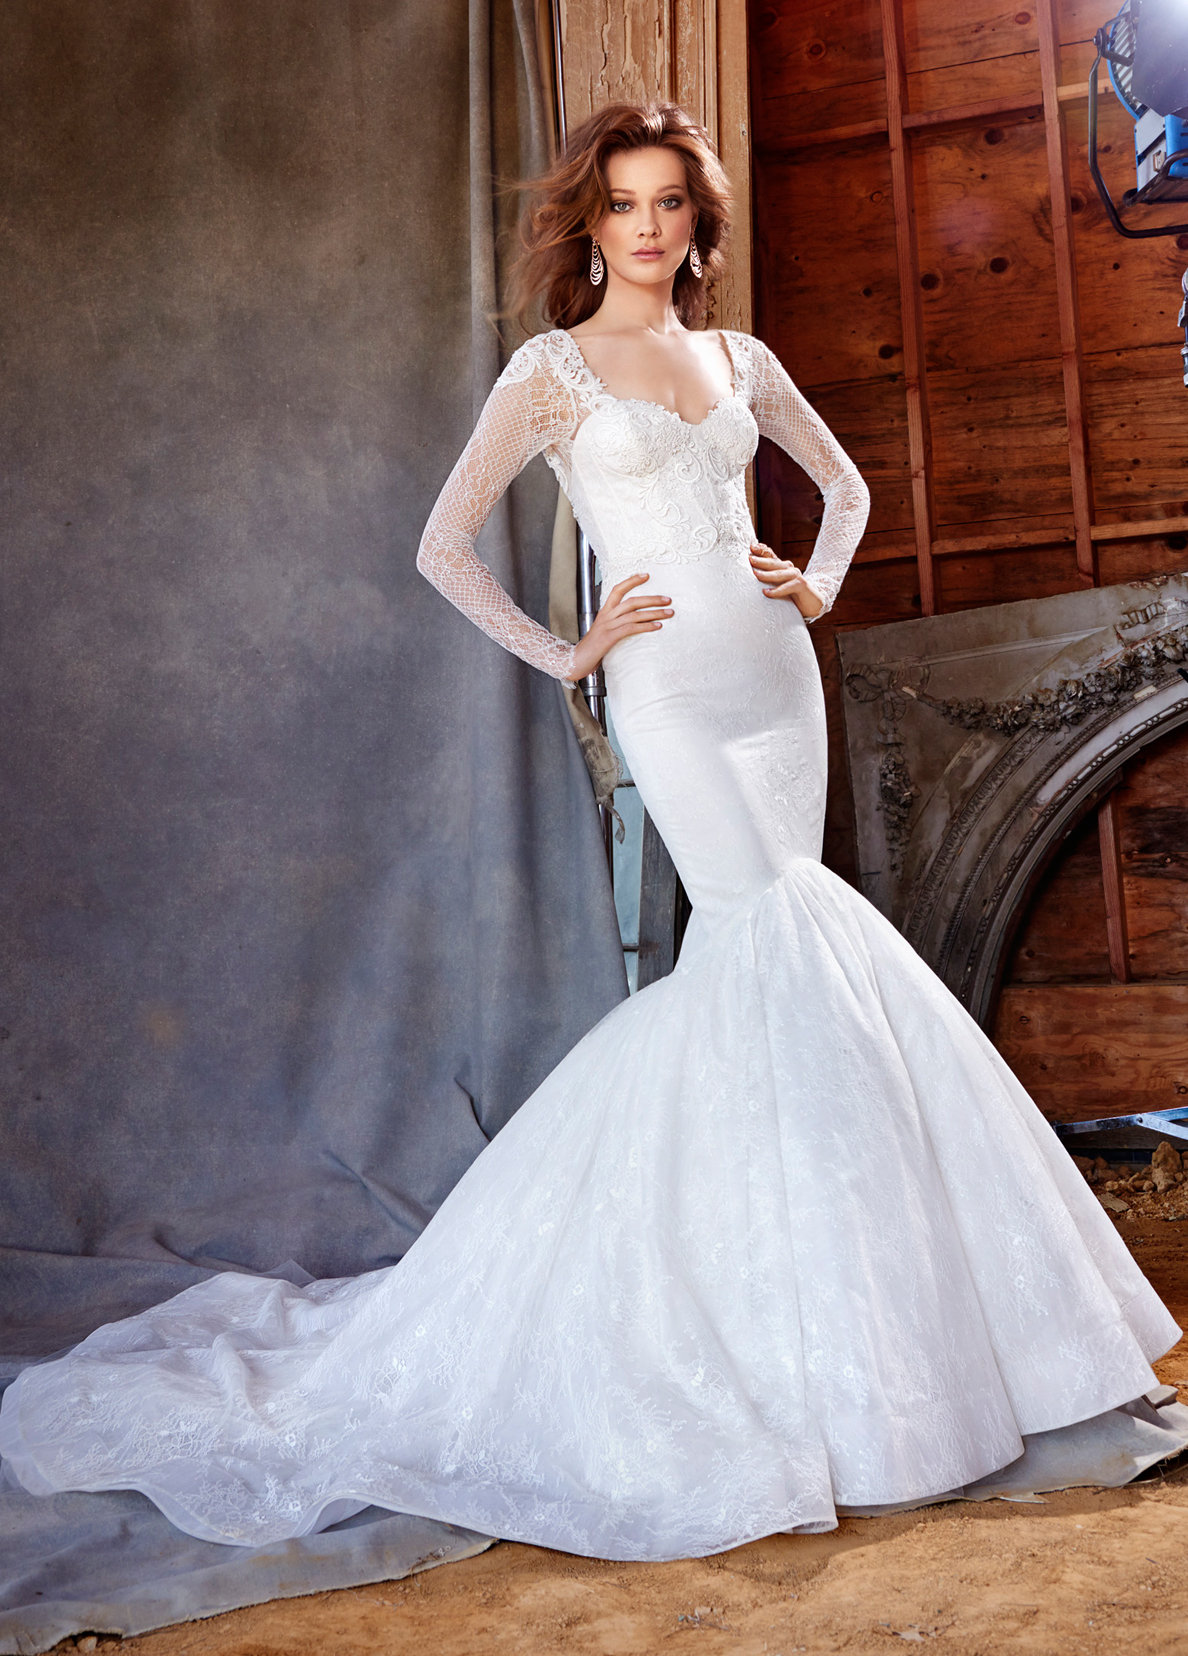 Bridal gowns and wedding dresses by jlm couture style 3560 for Lazaro lace wedding dress